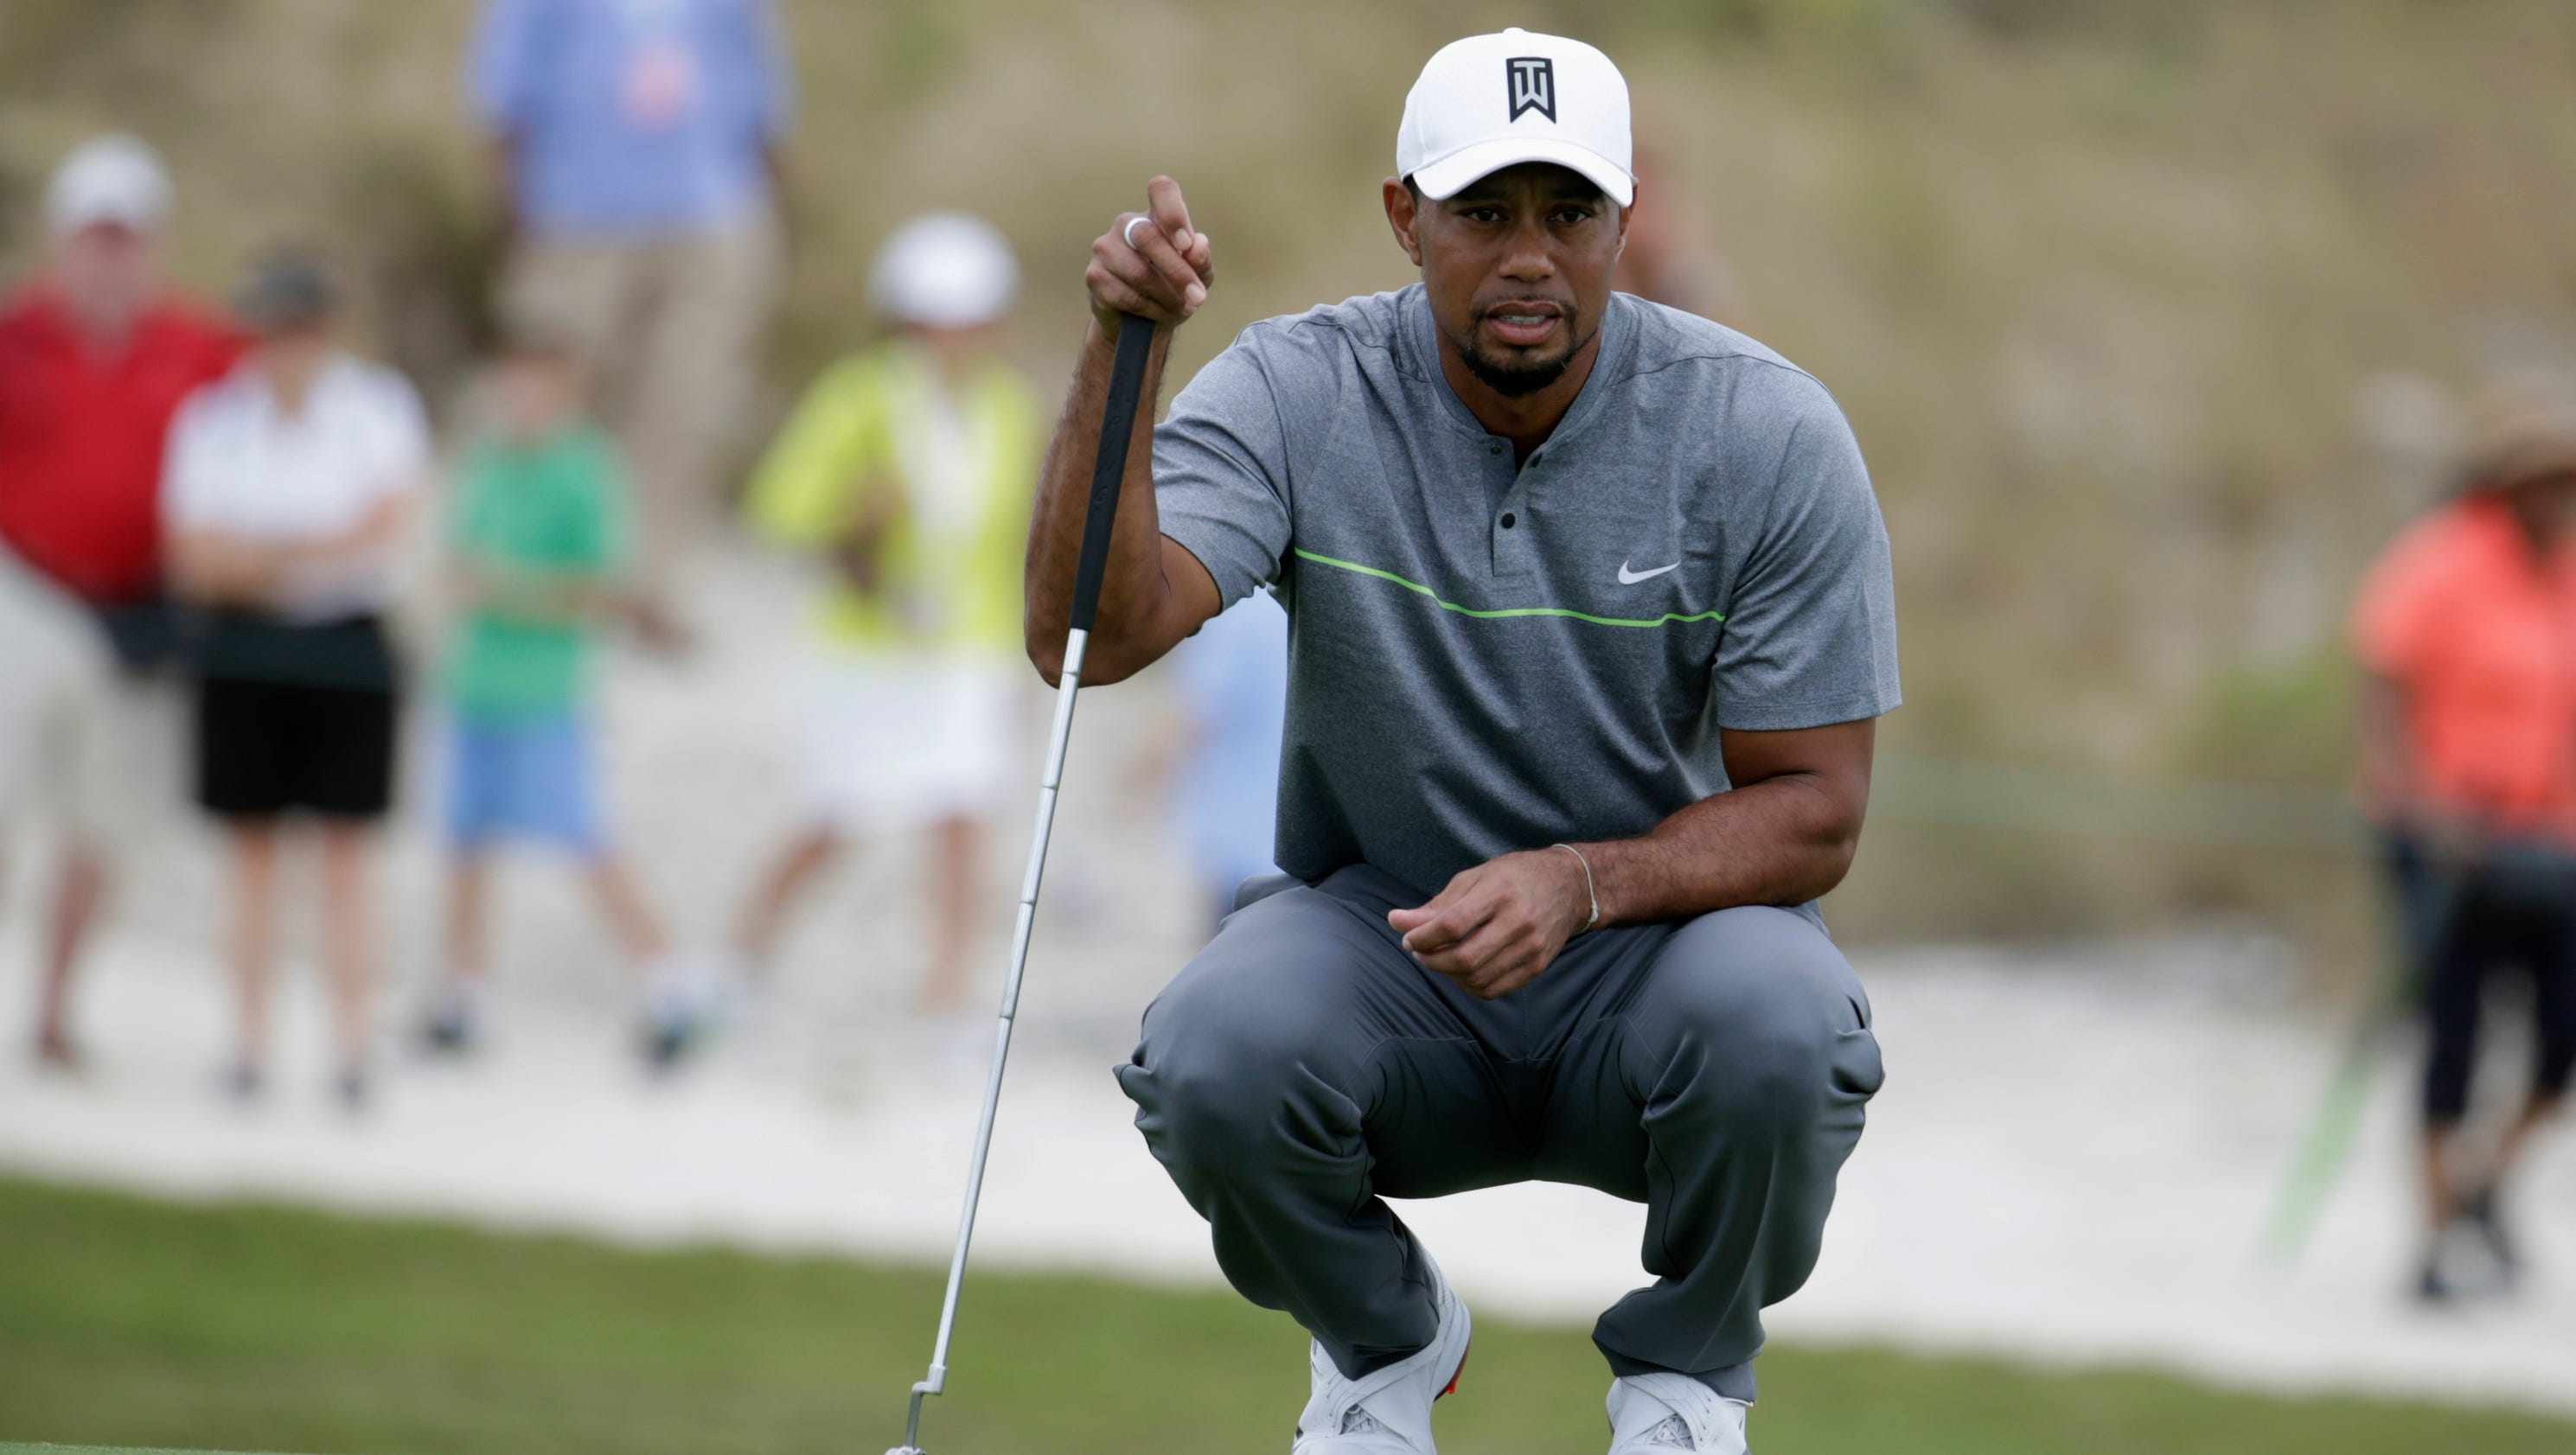 Tiger Woods can win again, analysts say